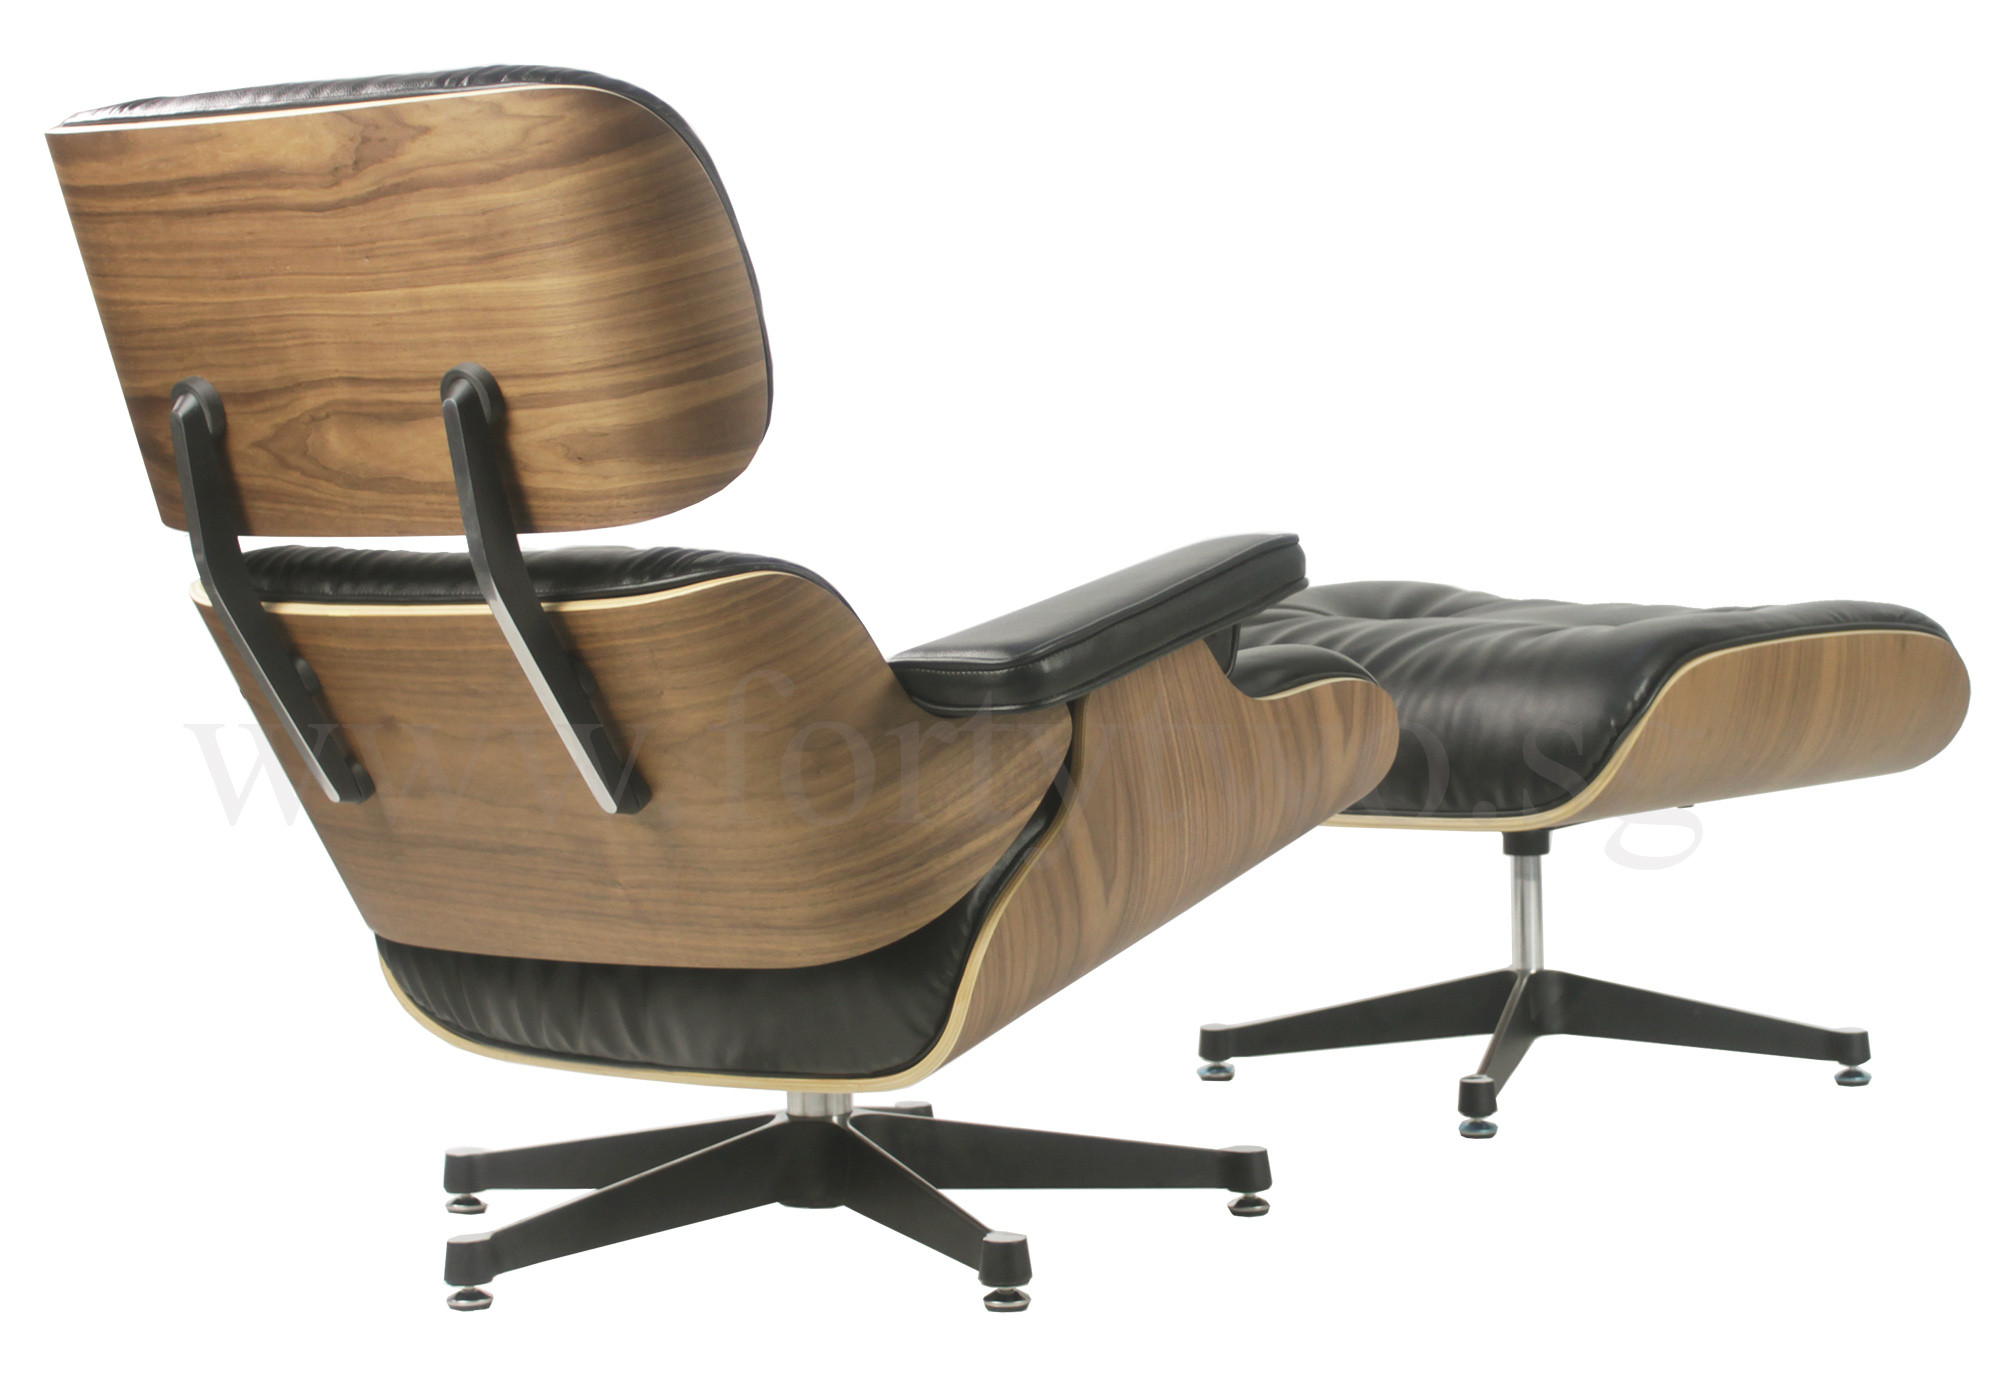 Designer replica eames lounge chair black furniture for Designer furniture replica malaysia